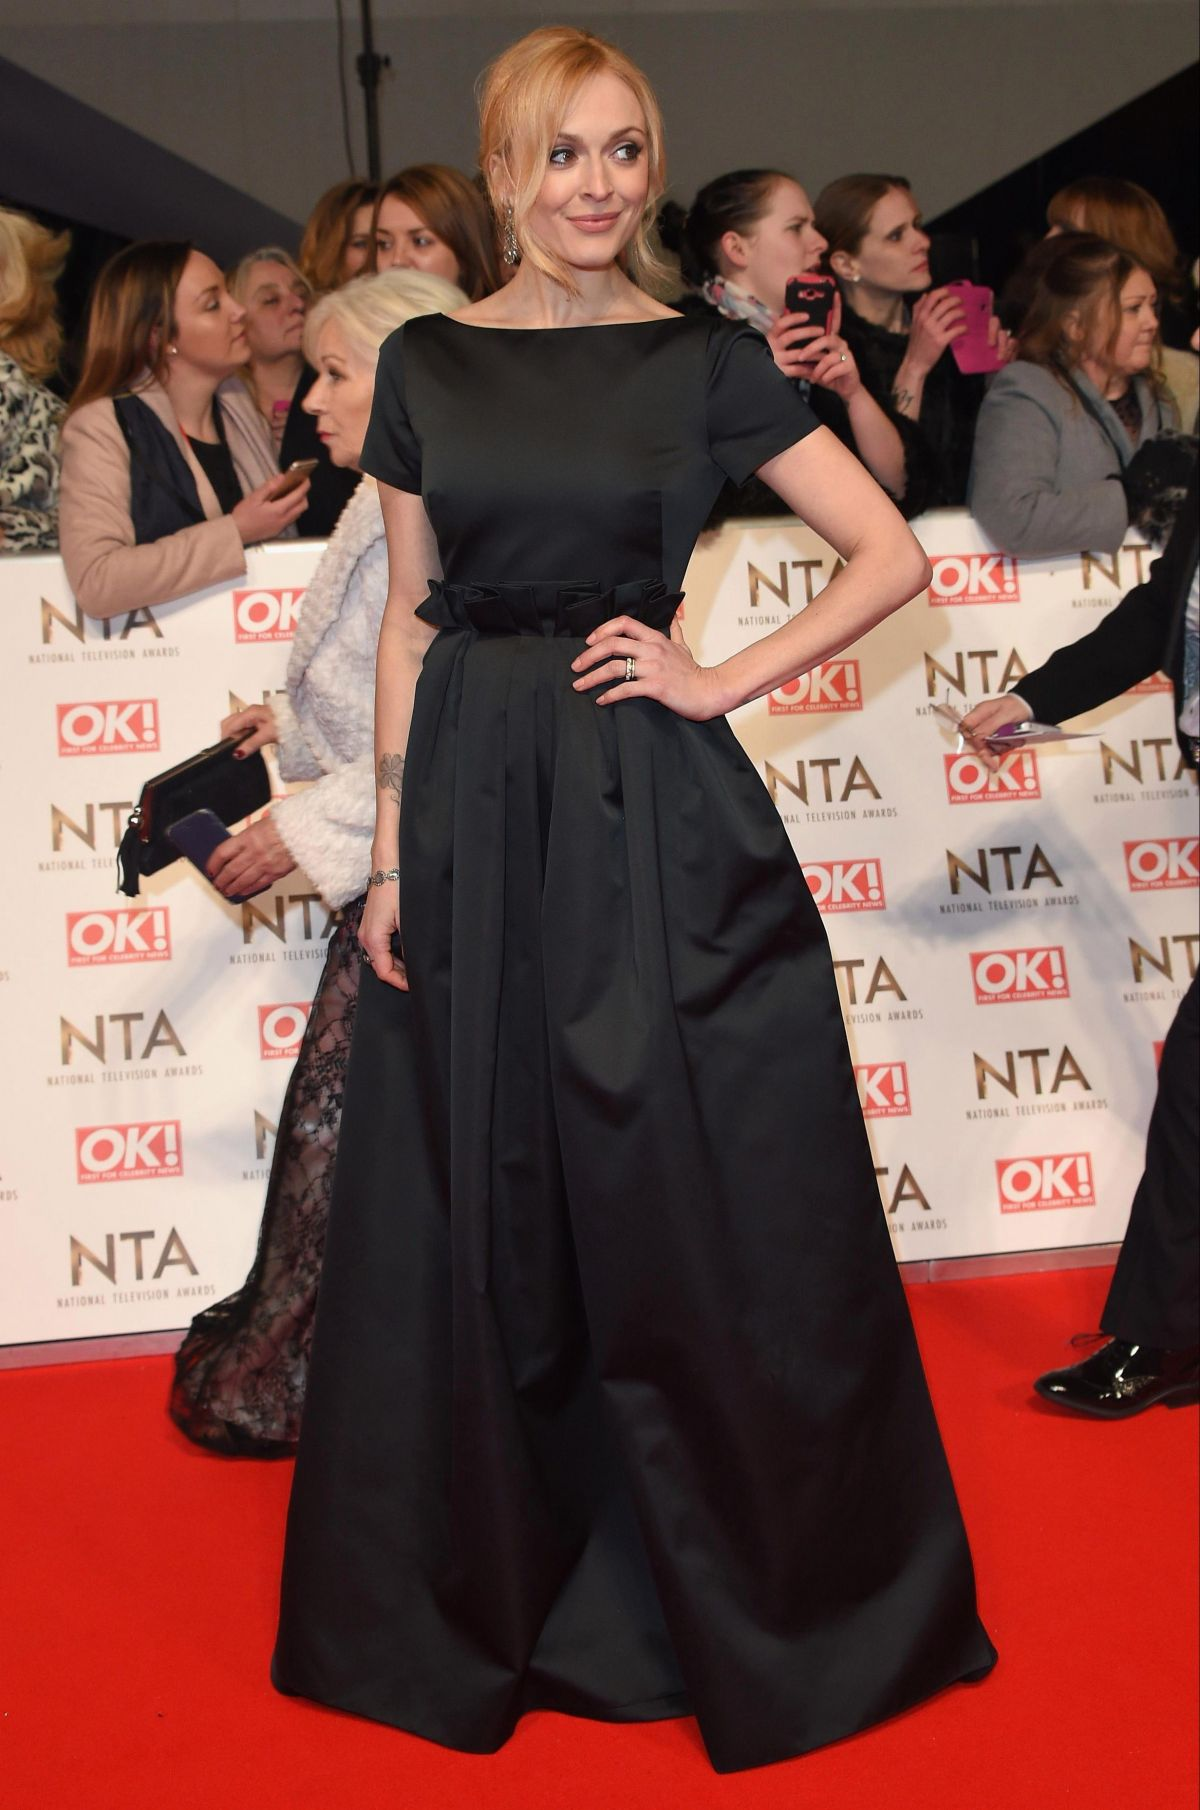 FEARNE COTTON at National Television Awards in London 01/25/2017